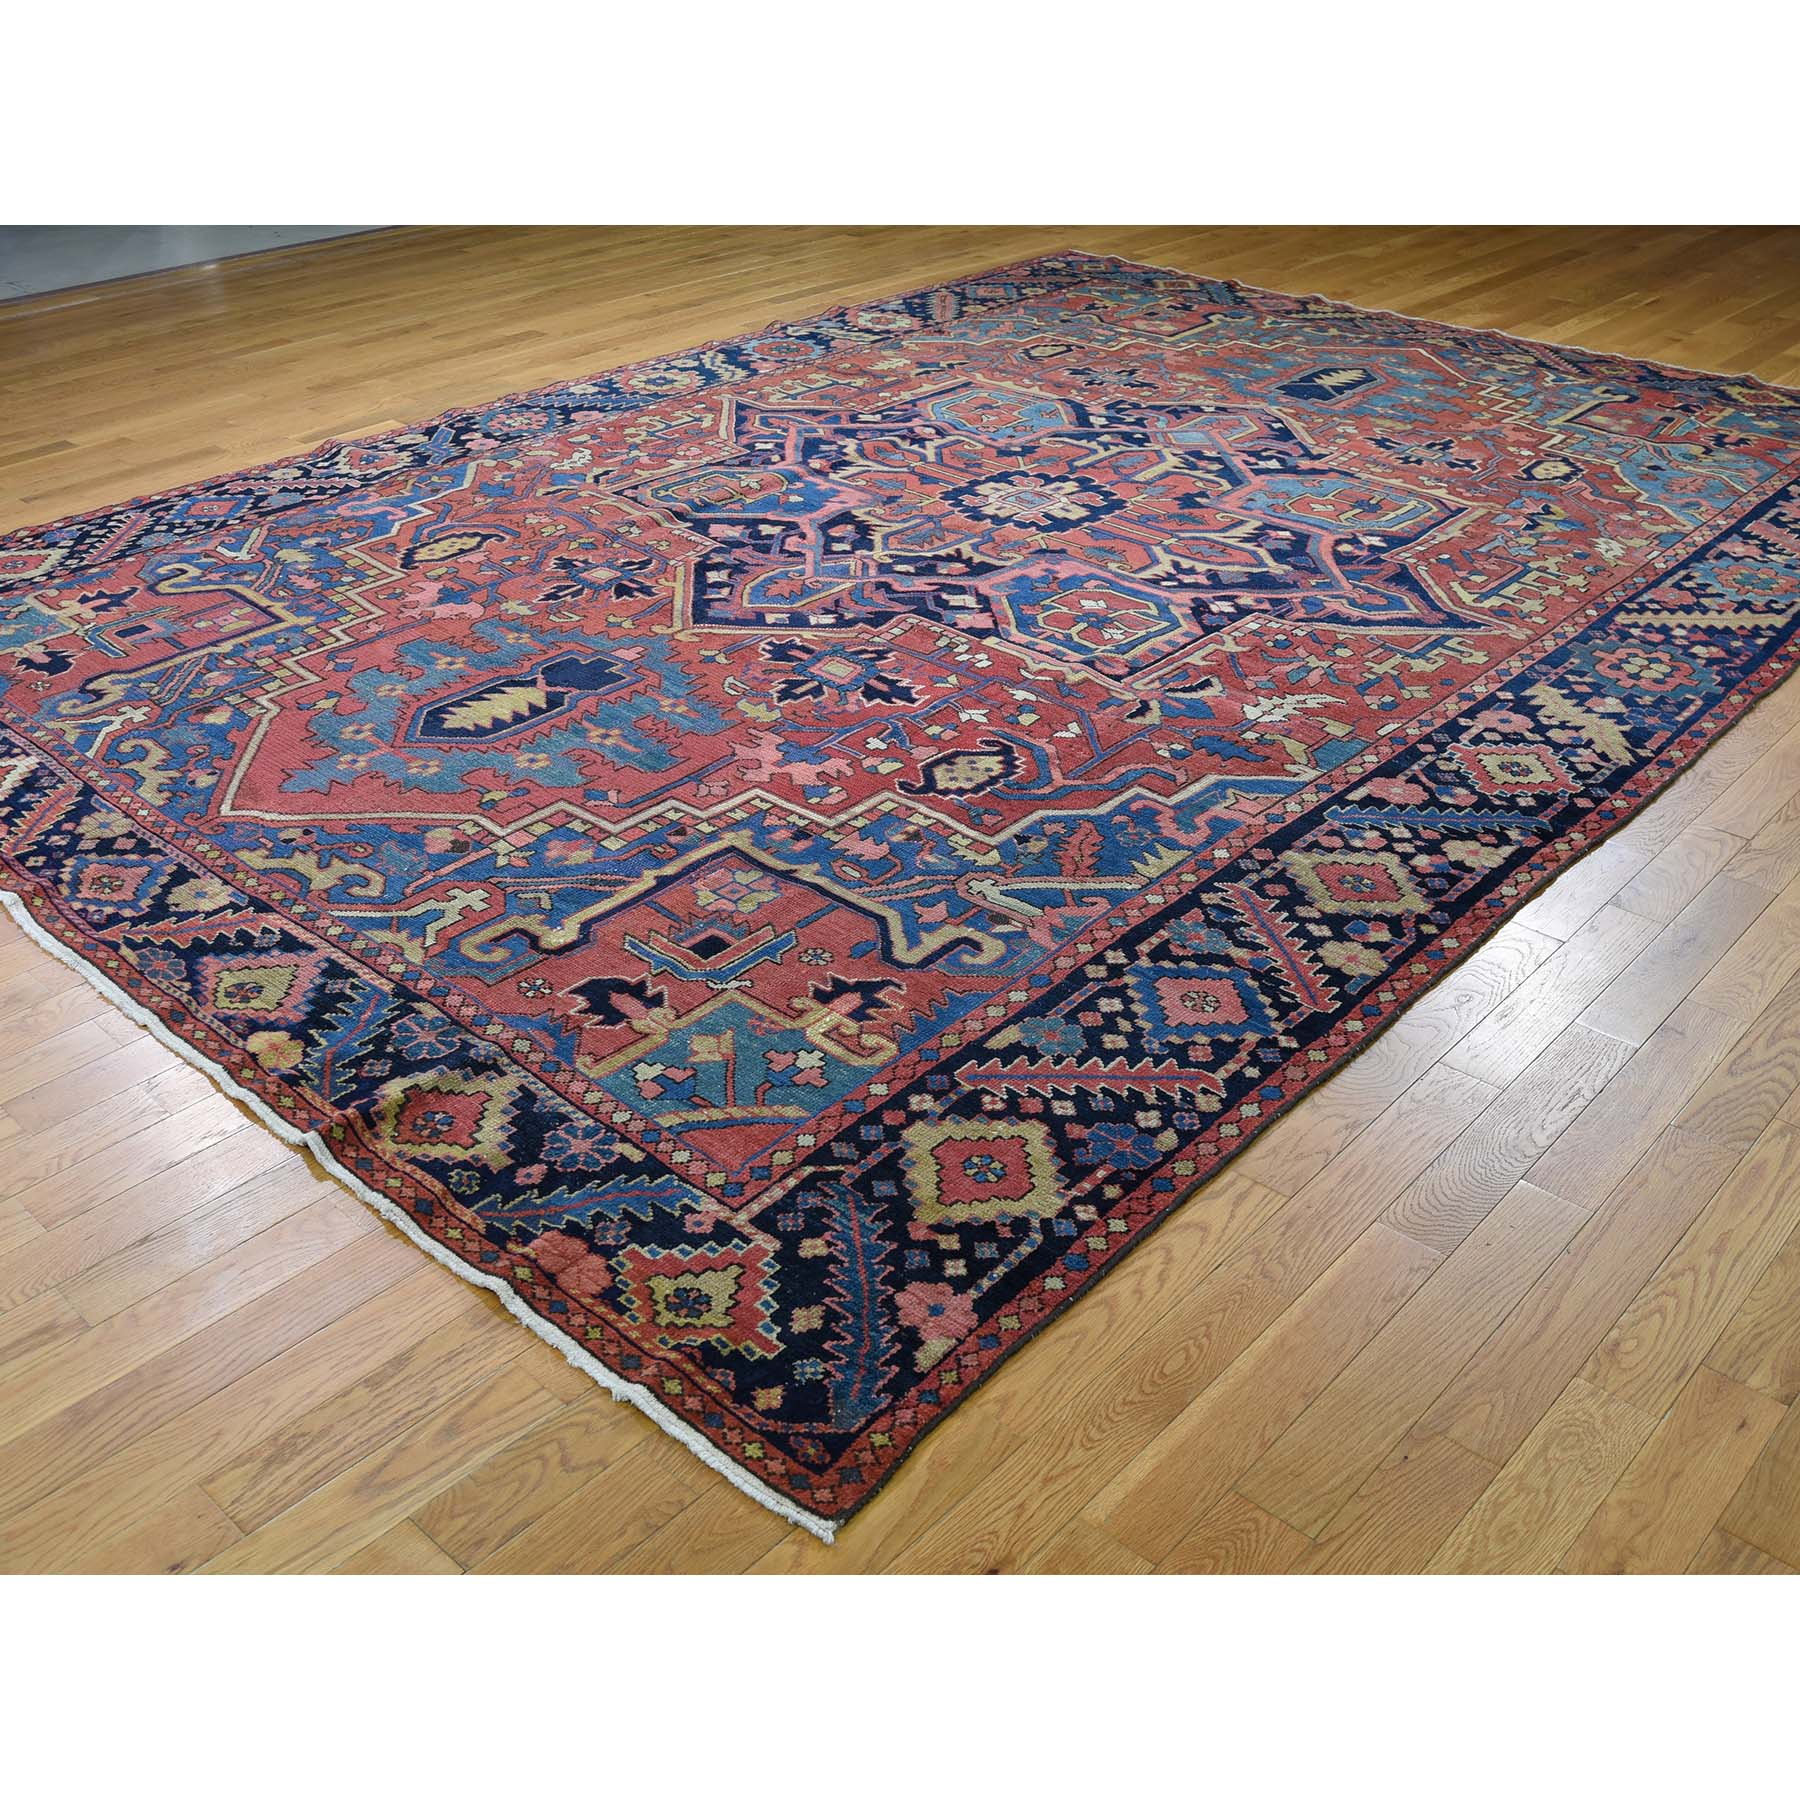 9-6 x13-4  Antique Persian Heriz Hand-Knotted Exc Condition Pure Wool Oriental Rug